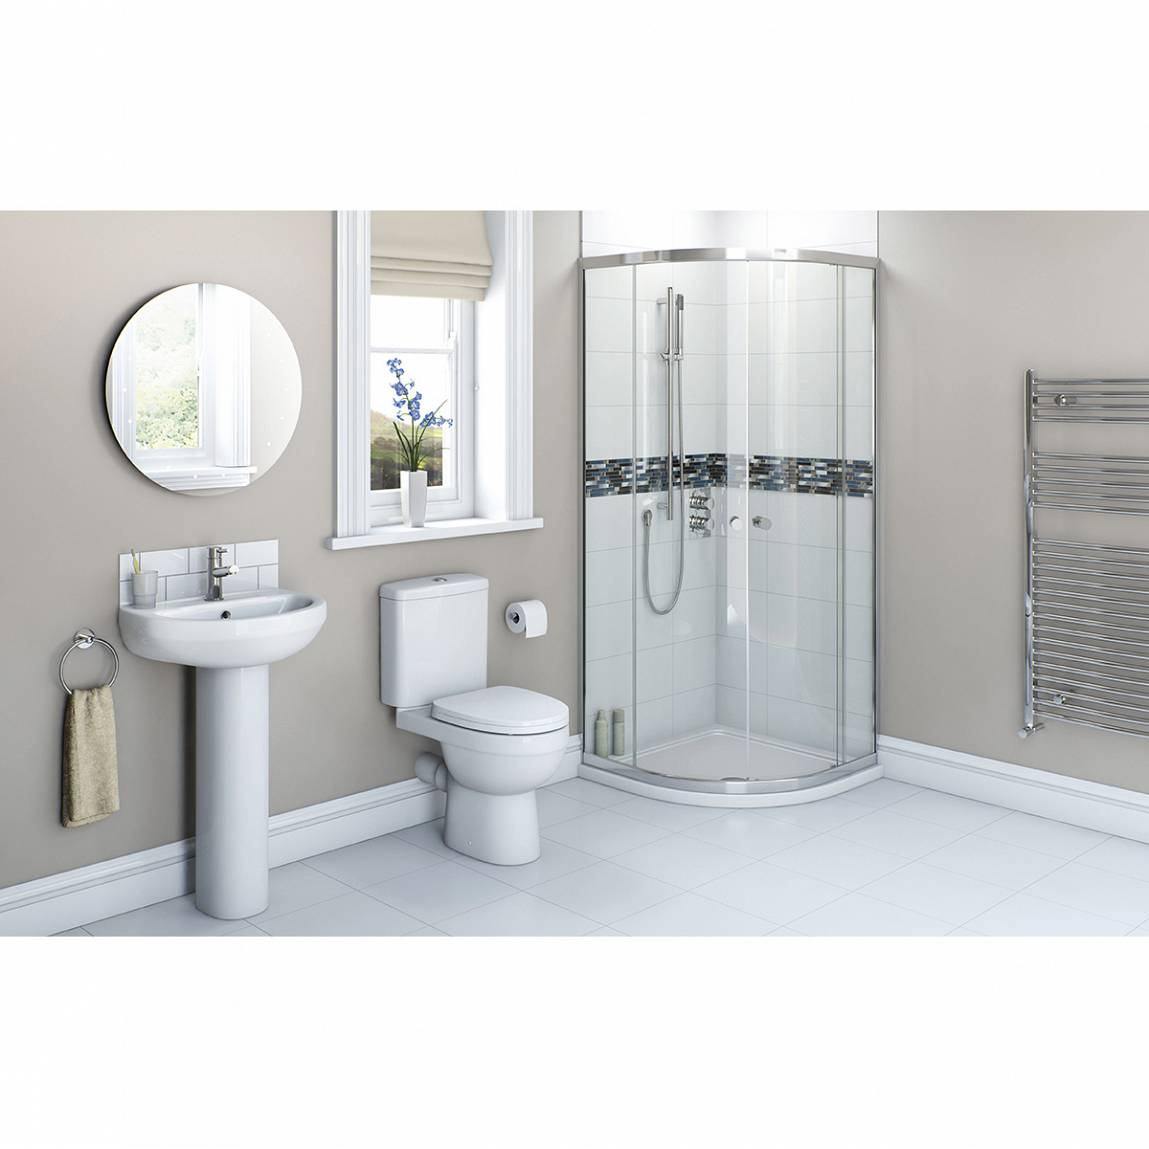 Image of Energy Bathroom set with Quadrant Enclosure 800 & Tray